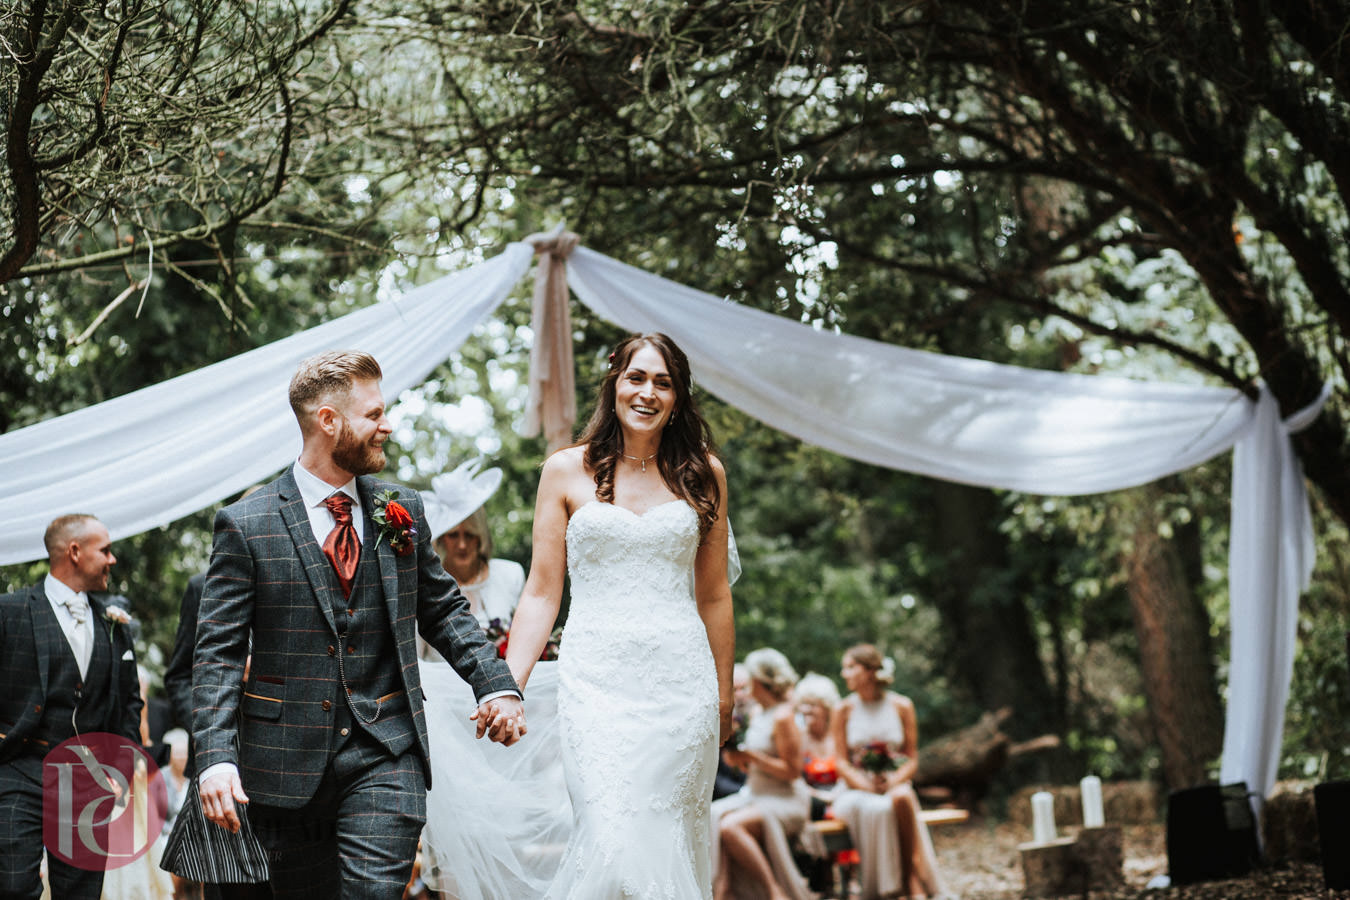 Peter_Redhead_Photography_Natural_Wedding_Photogrpaher-003